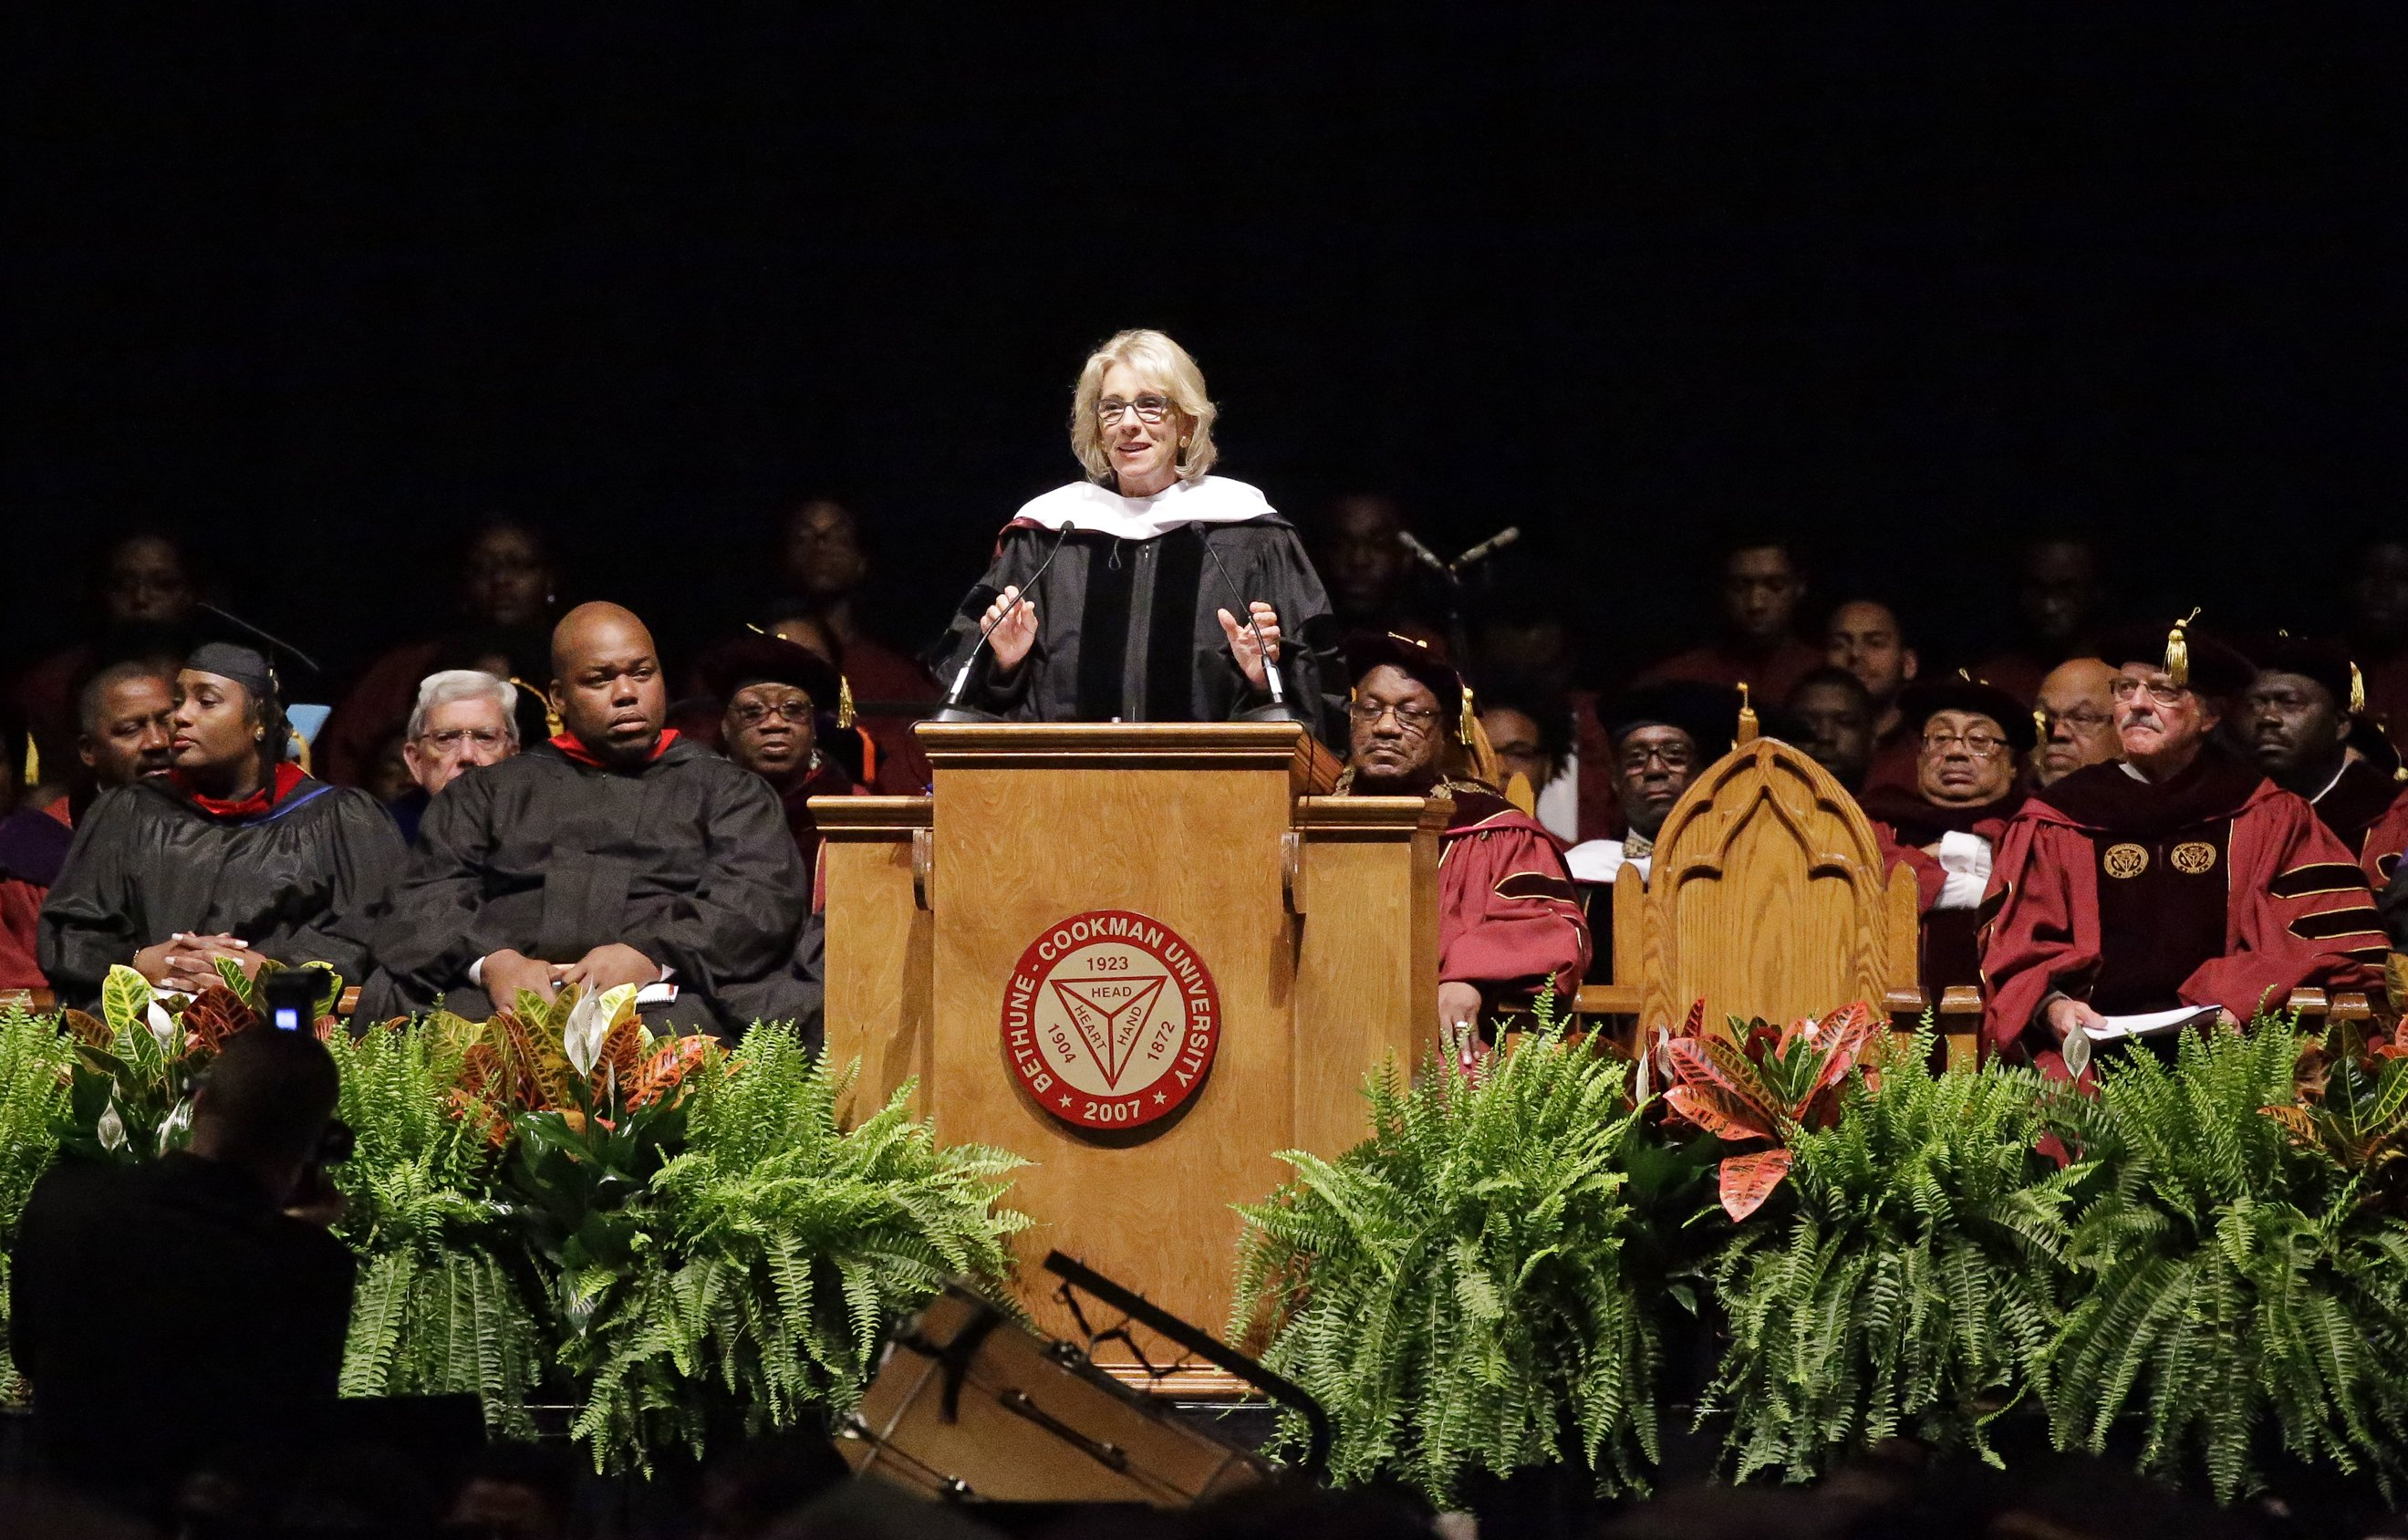 Education Secretary Betsy DeVos delivers a commencement address to graduates at Bethune-Cookman University on May 10, 2017, in Daytona Beach, Fla.